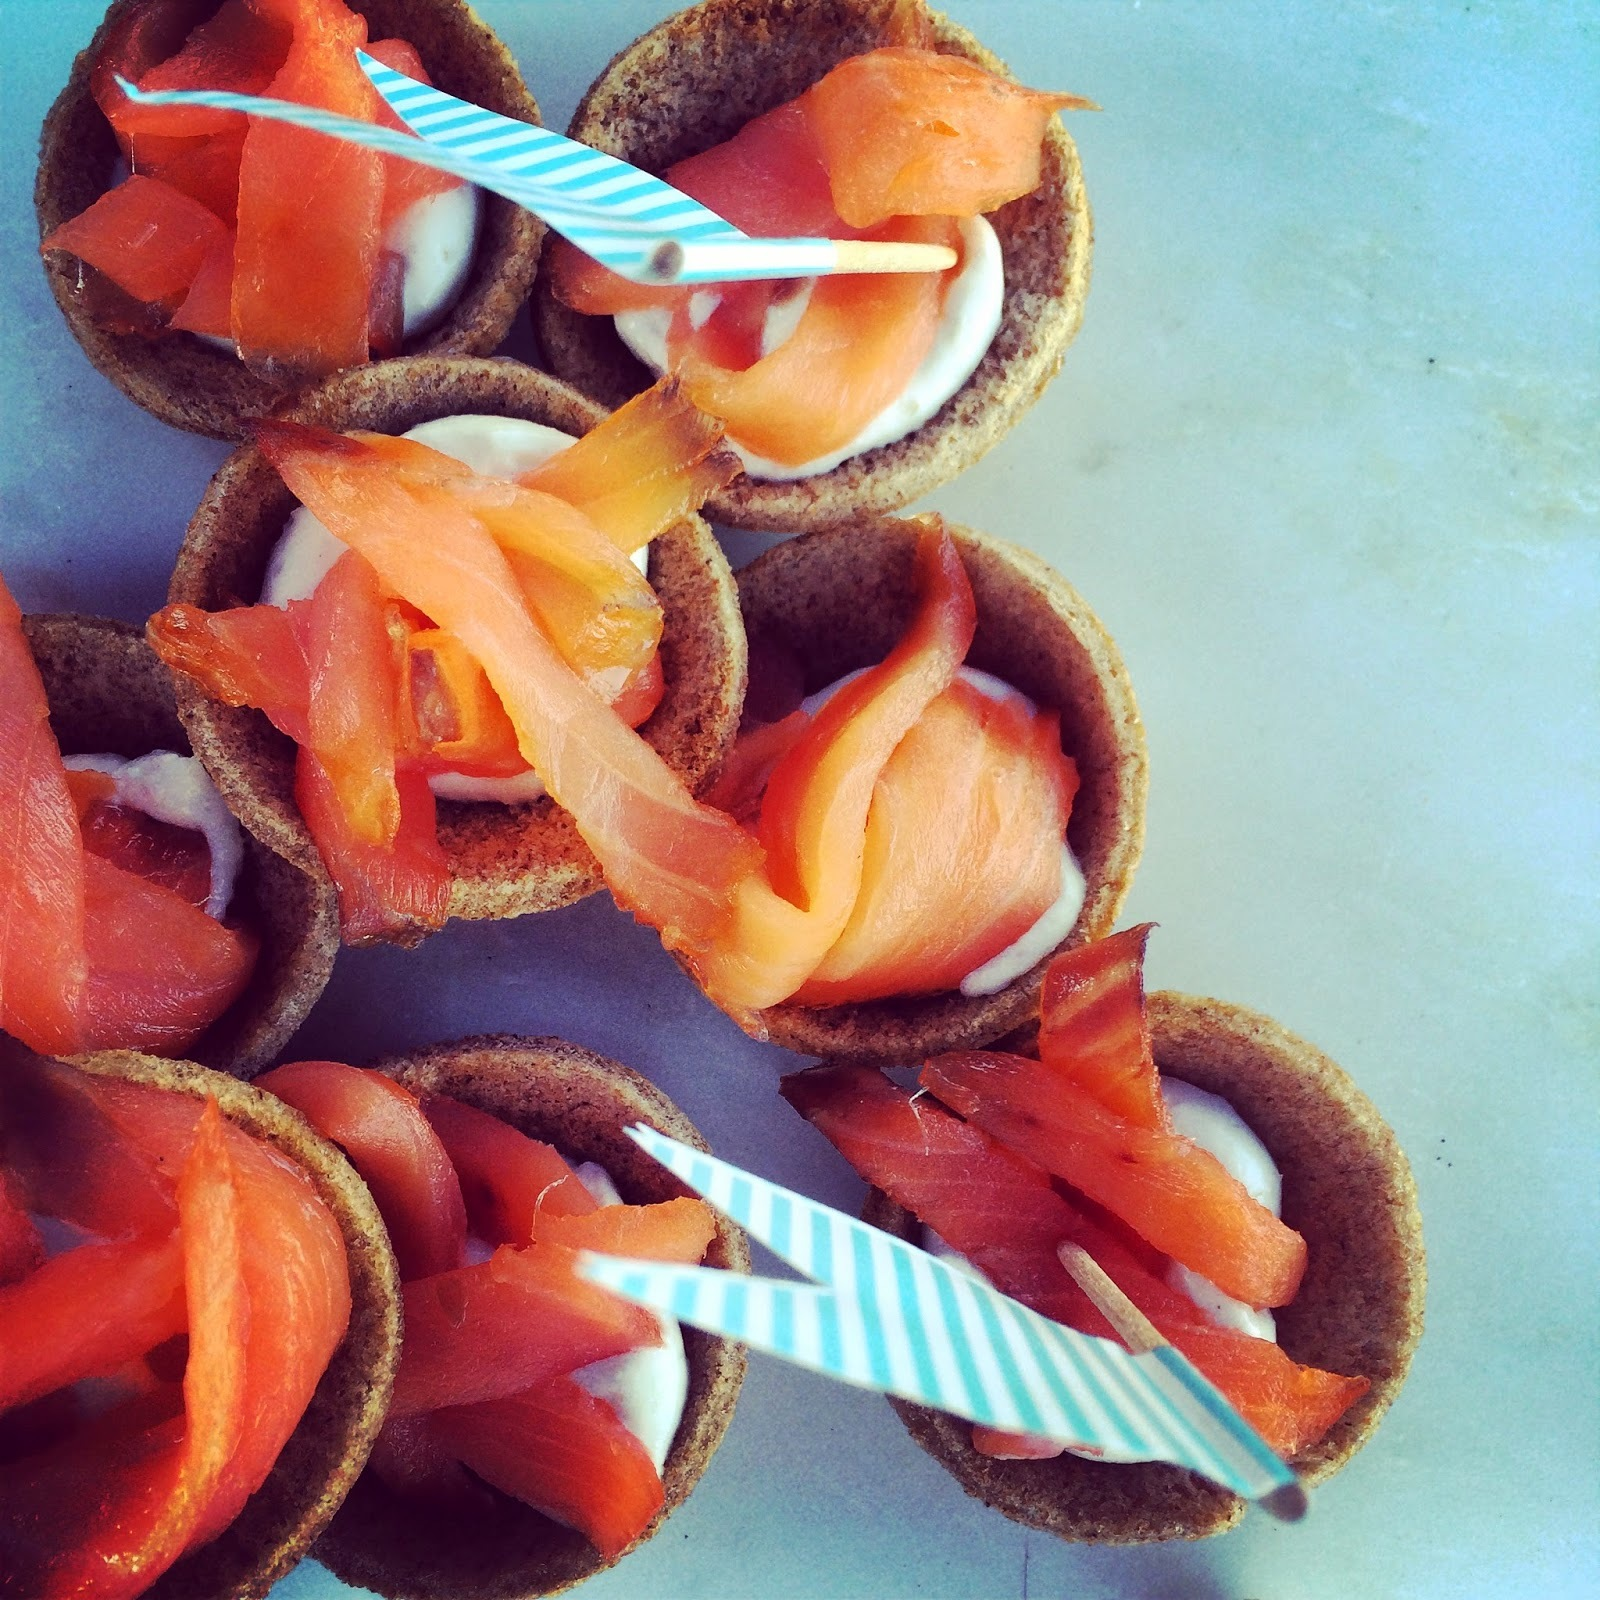 Brown Bread Cups with Smoked Salmon and Horseradish Cream Canapés